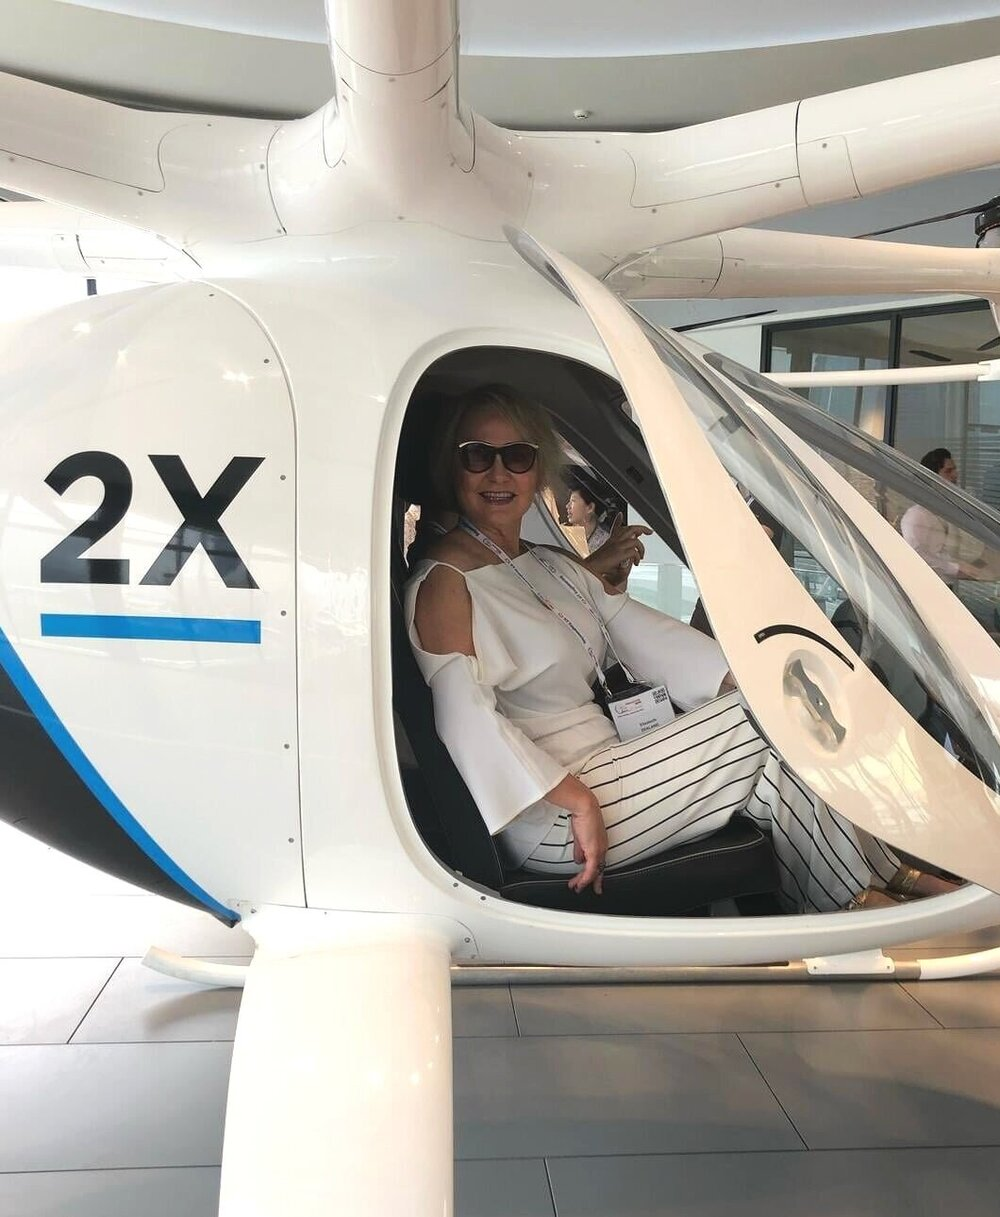 Spot Parking CEO Elizabeth Zealand inside the Volocopter, an electric air taxi that made its first public showcase over Marina Bay during the Congress